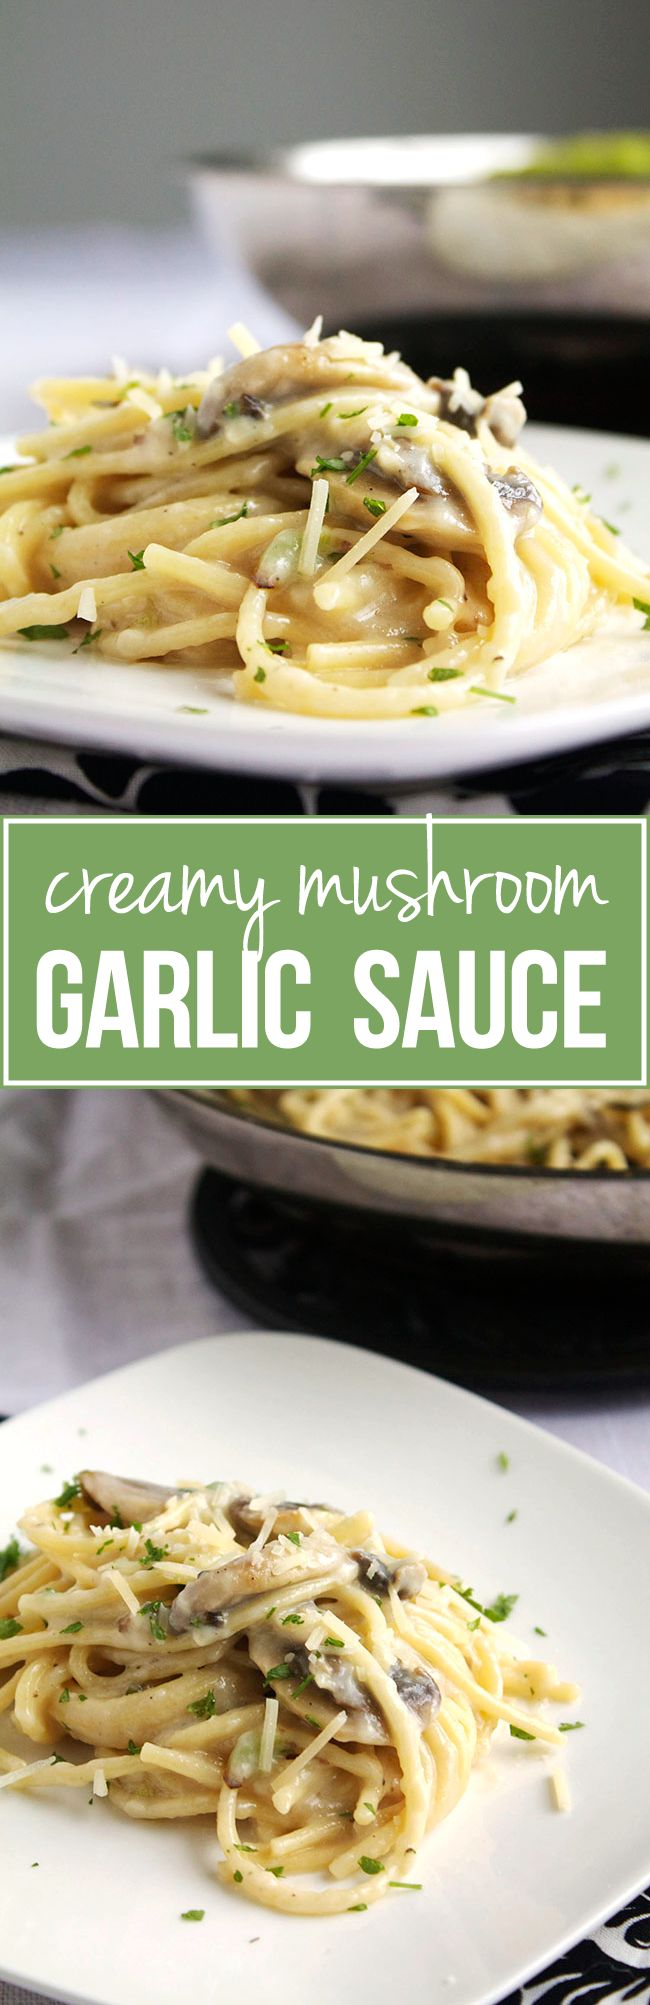 Creamy Mushroom & Garlic Sauce | The easiest, tastiest pasta sauce! Also great as a sauce for chicken or roasted veggies - ready in 30 minutes or less!